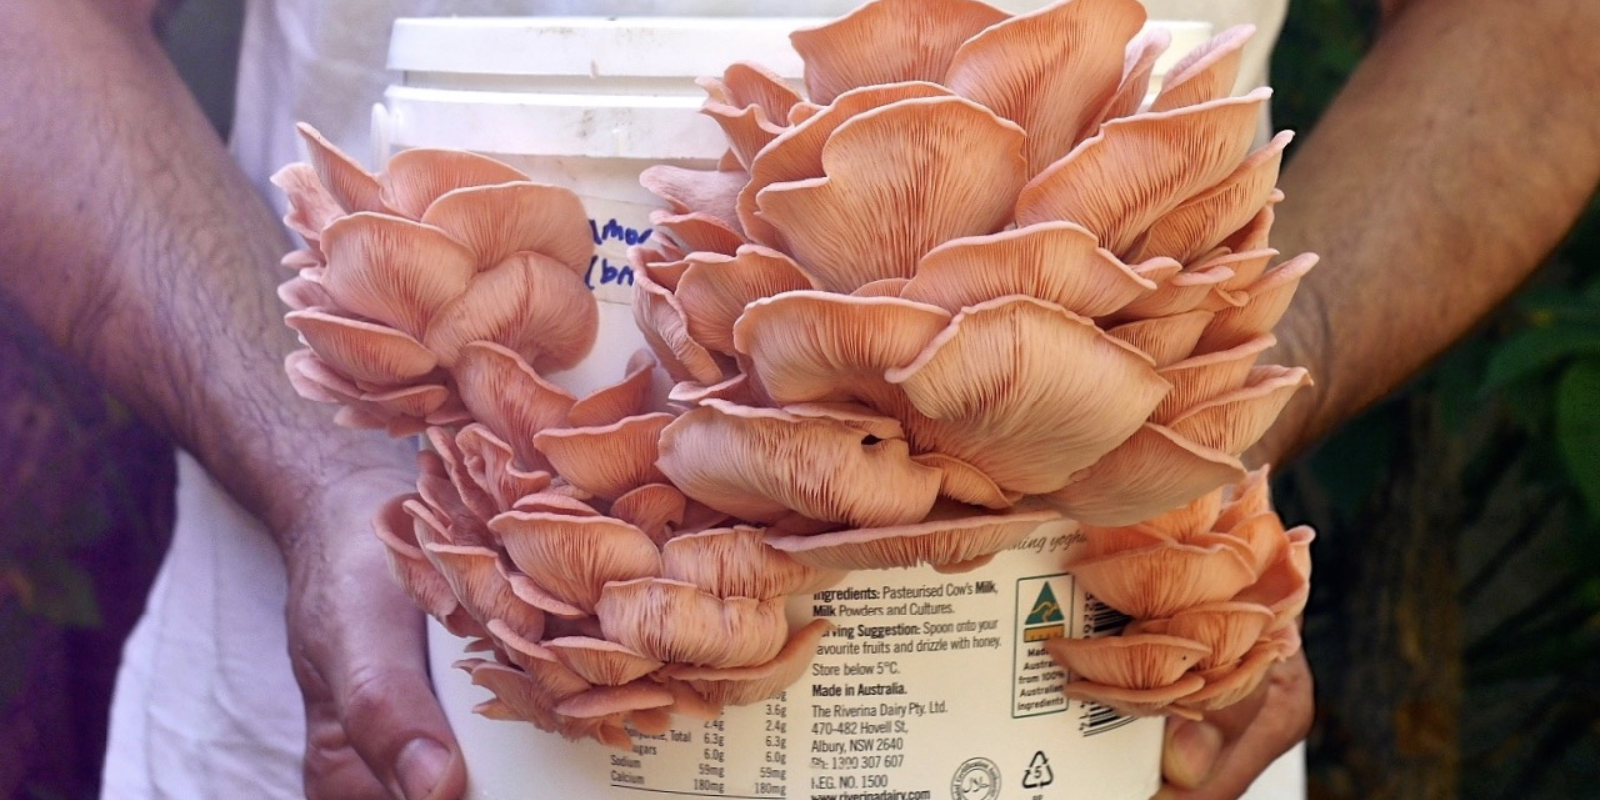 How To Grow Mushrooms in Buckets & a Wild Fungi Foraging Guide